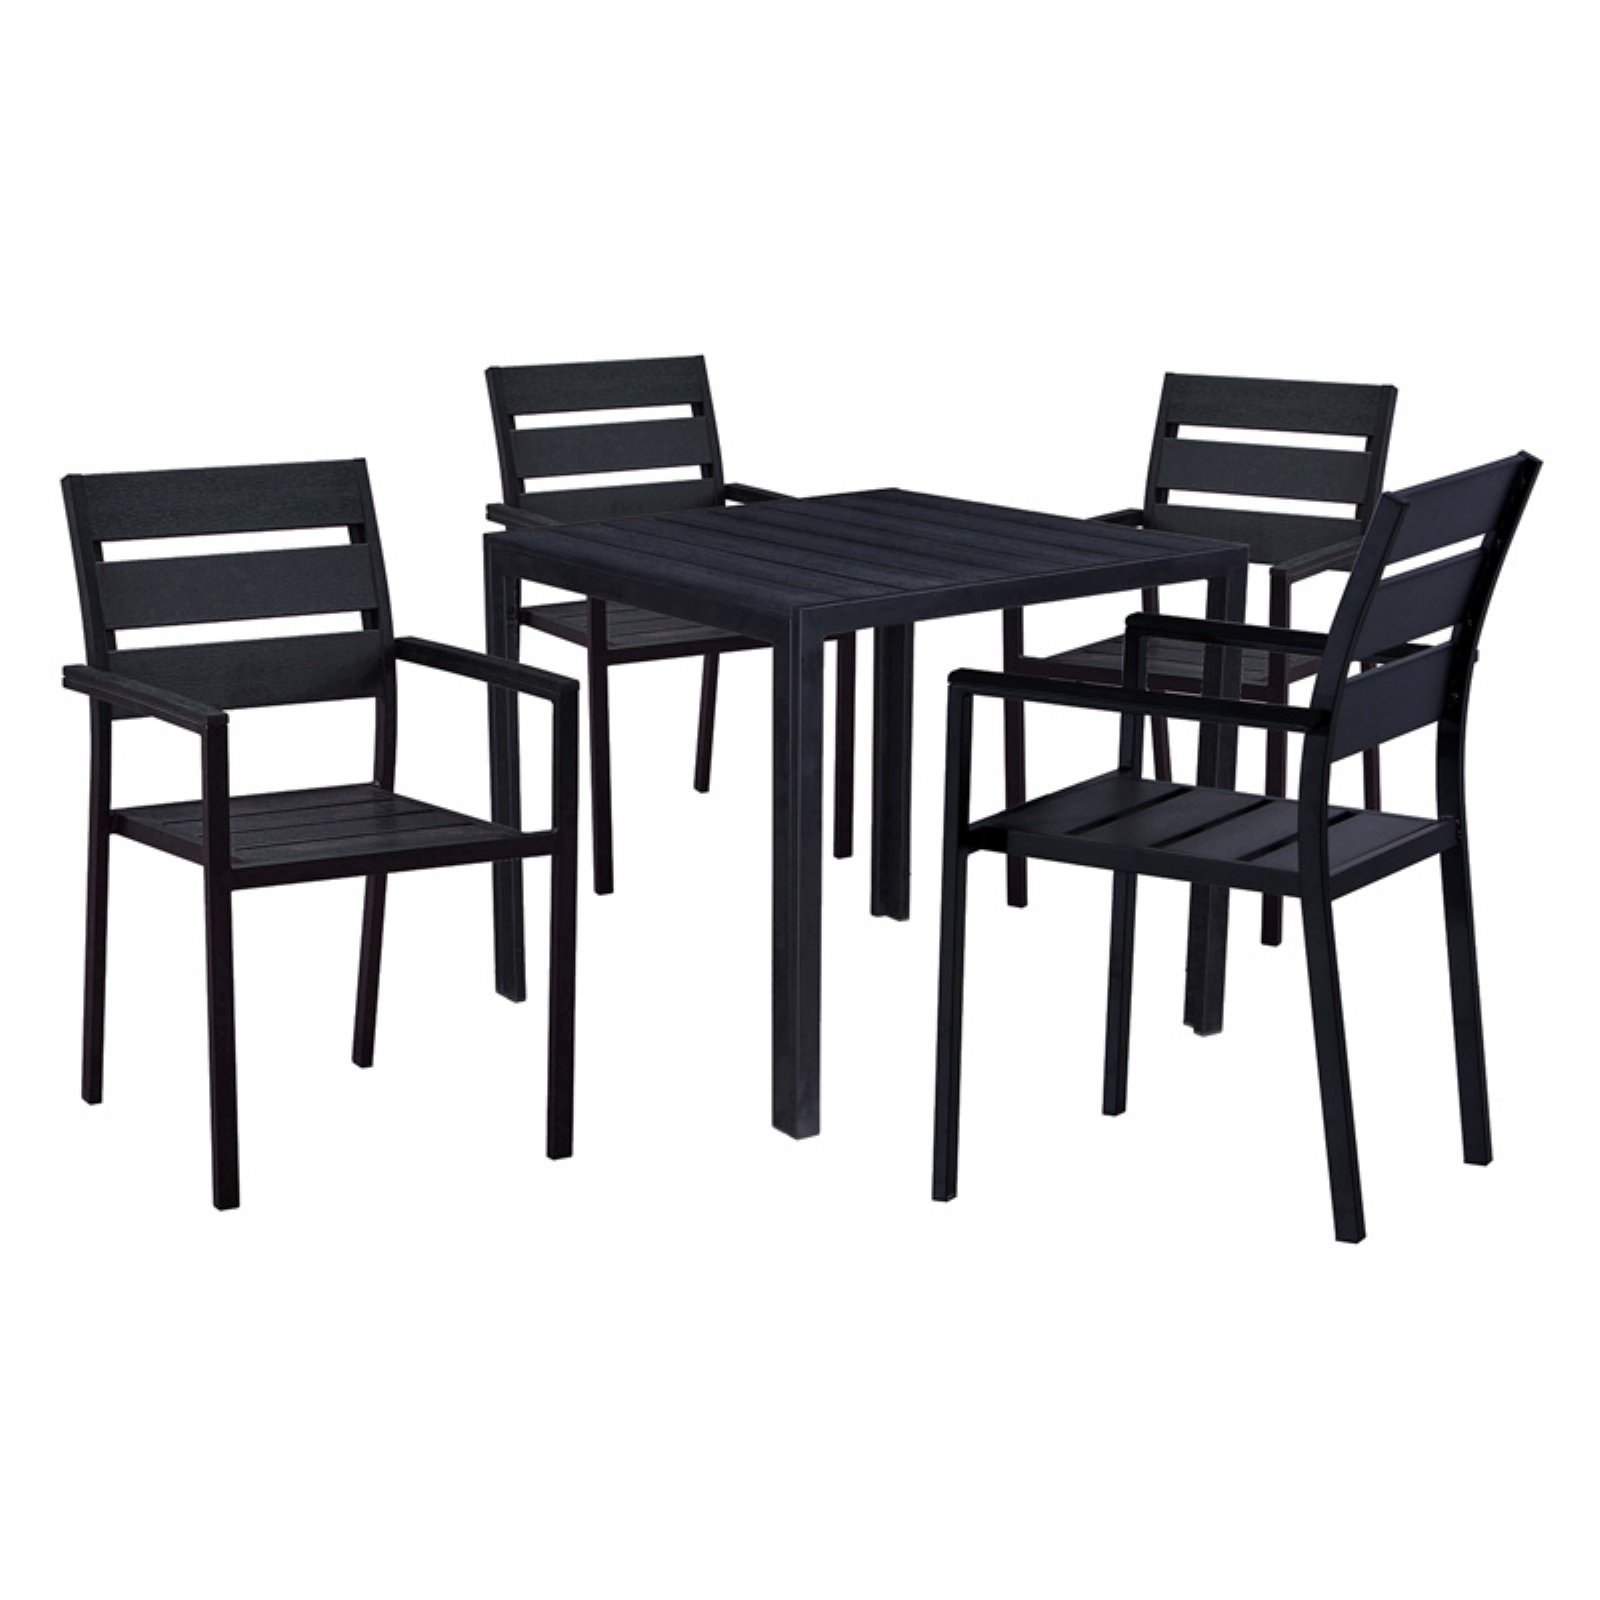 Oakland Living Slat Back Faux Wood and Steel 5 Piece Square Counter Height Patio Dining Set